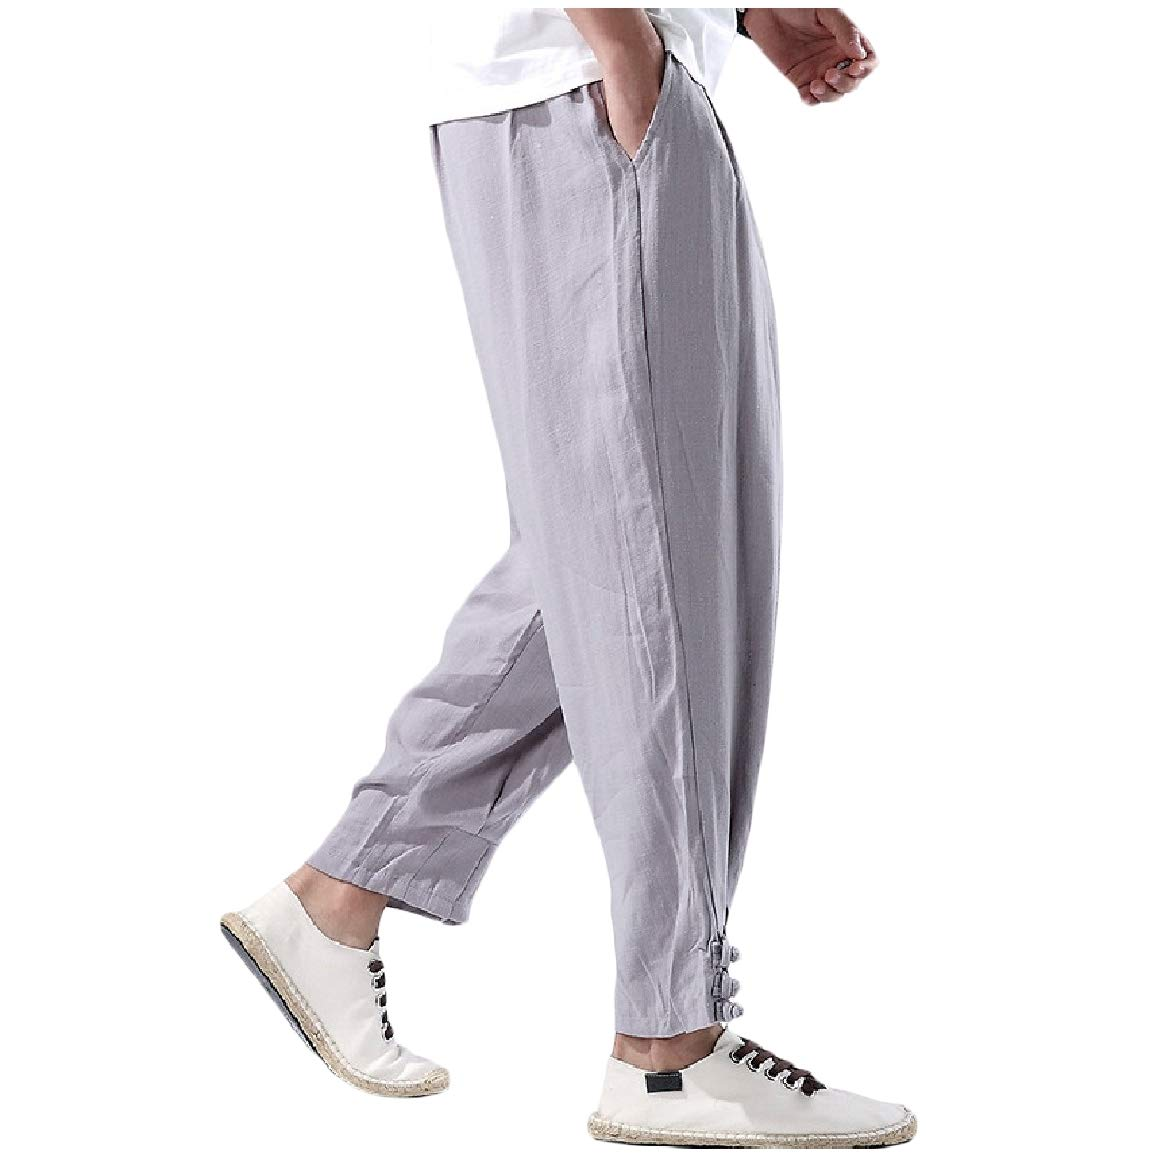 QUHS Mens Loose Harem Pants Linen Chinese Style Tunics Casual Trousers